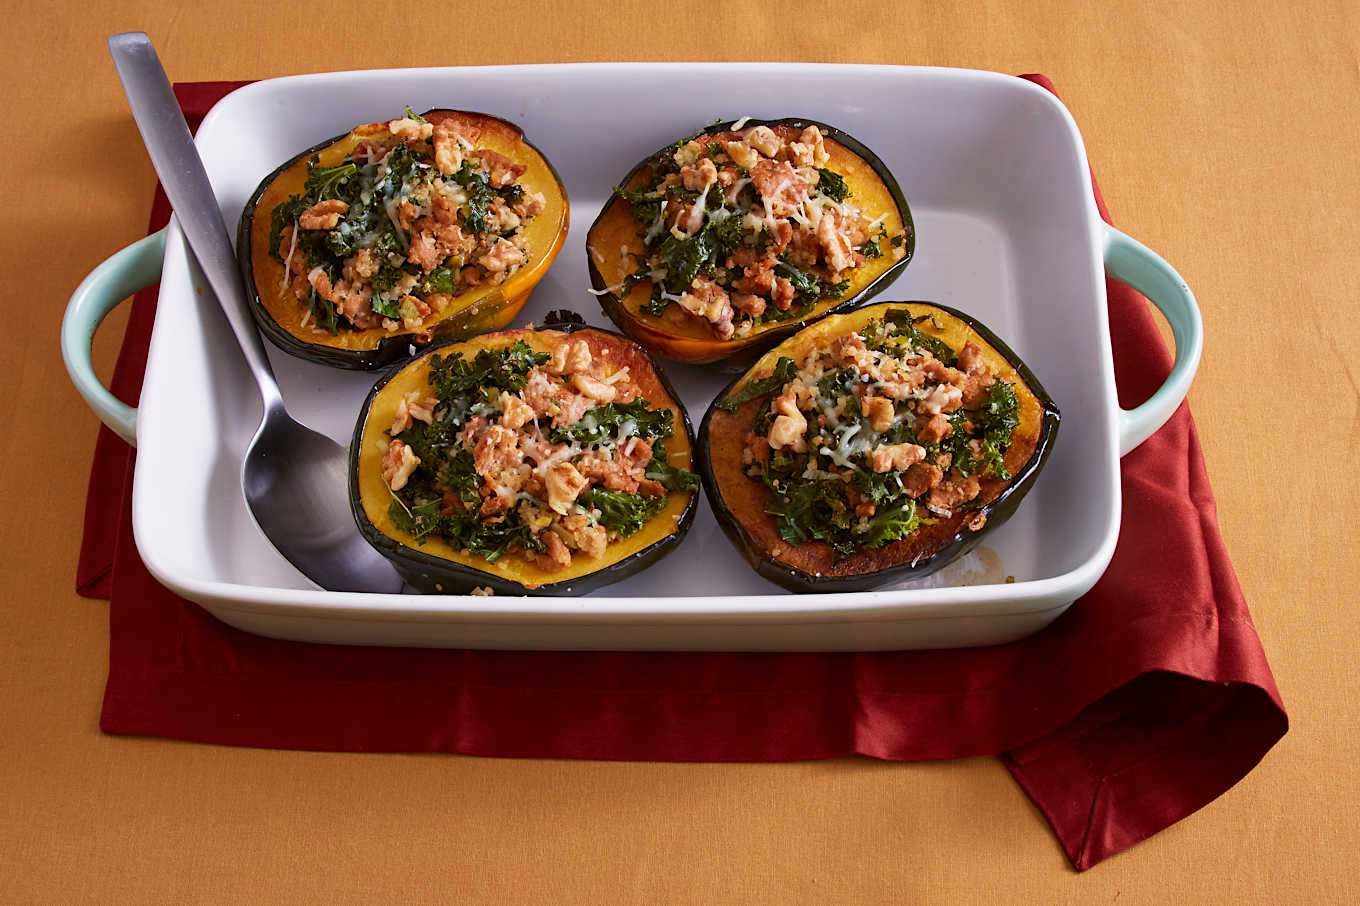 Quinoa stuffed acorn squash with ground turkey